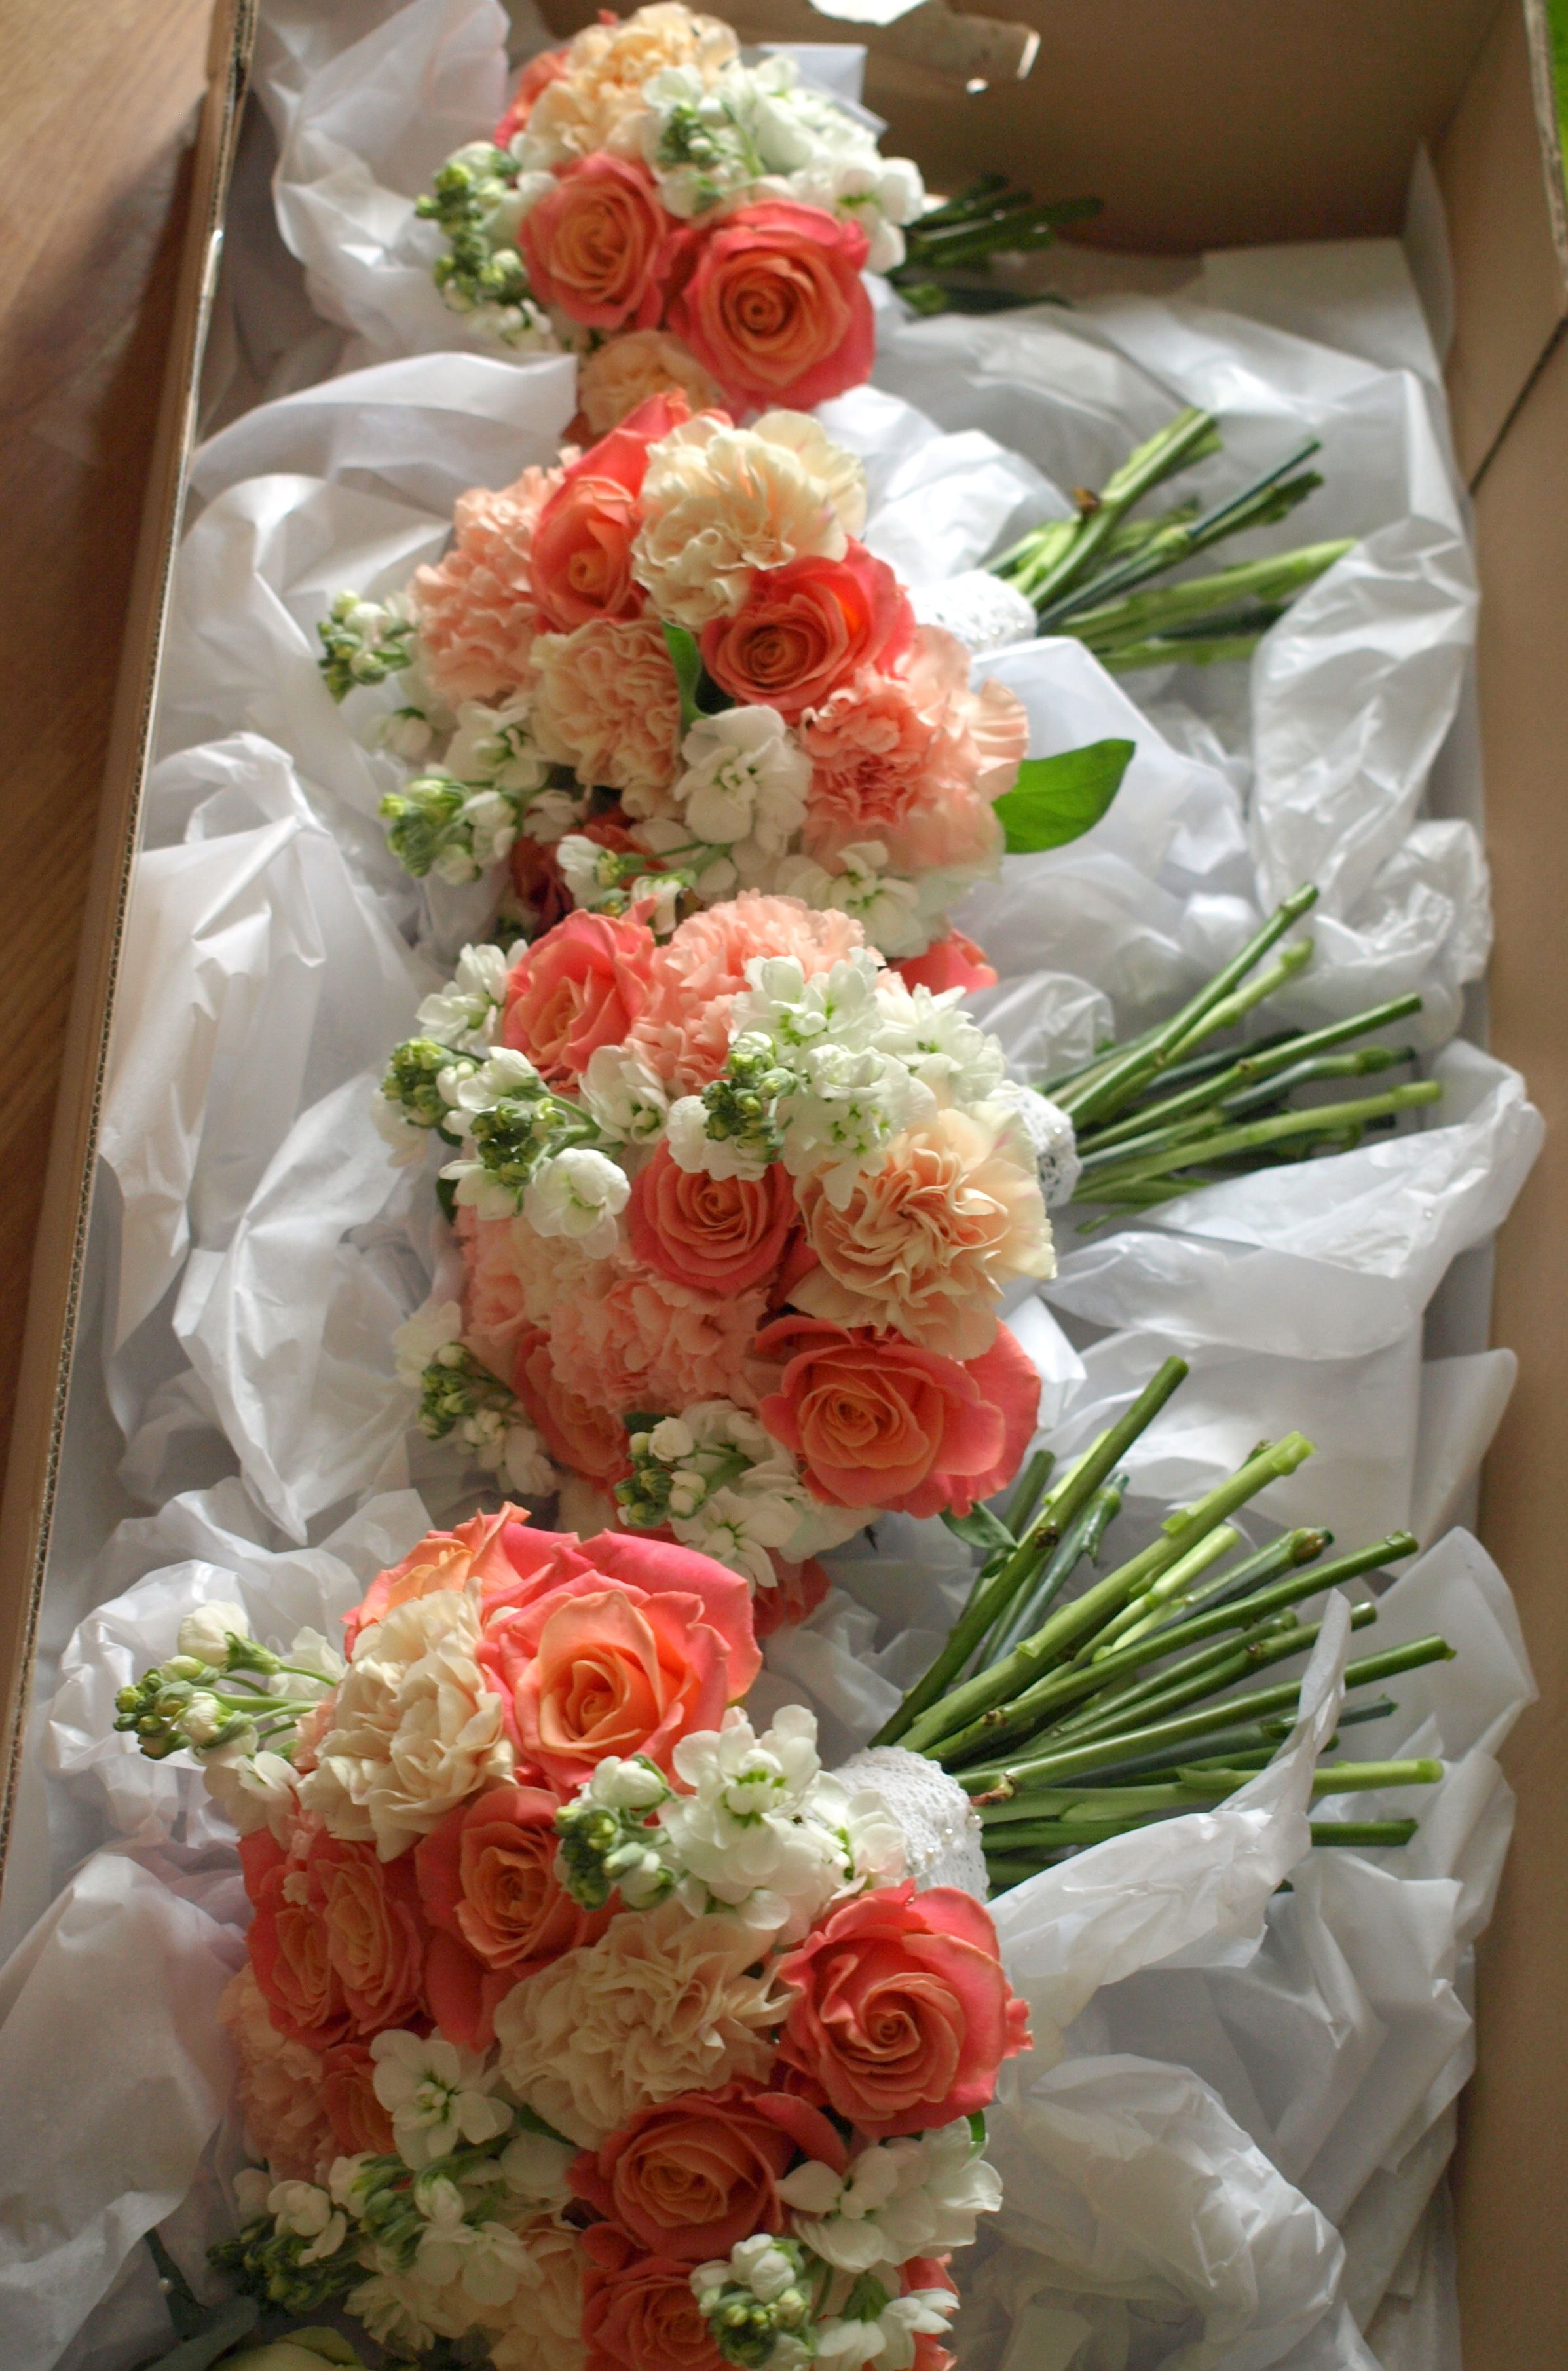 Miss piggy roses carnations and stocks by bows blooms peach miss piggy roses carnations and stocks by bows blooms peach white coral mightylinksfo